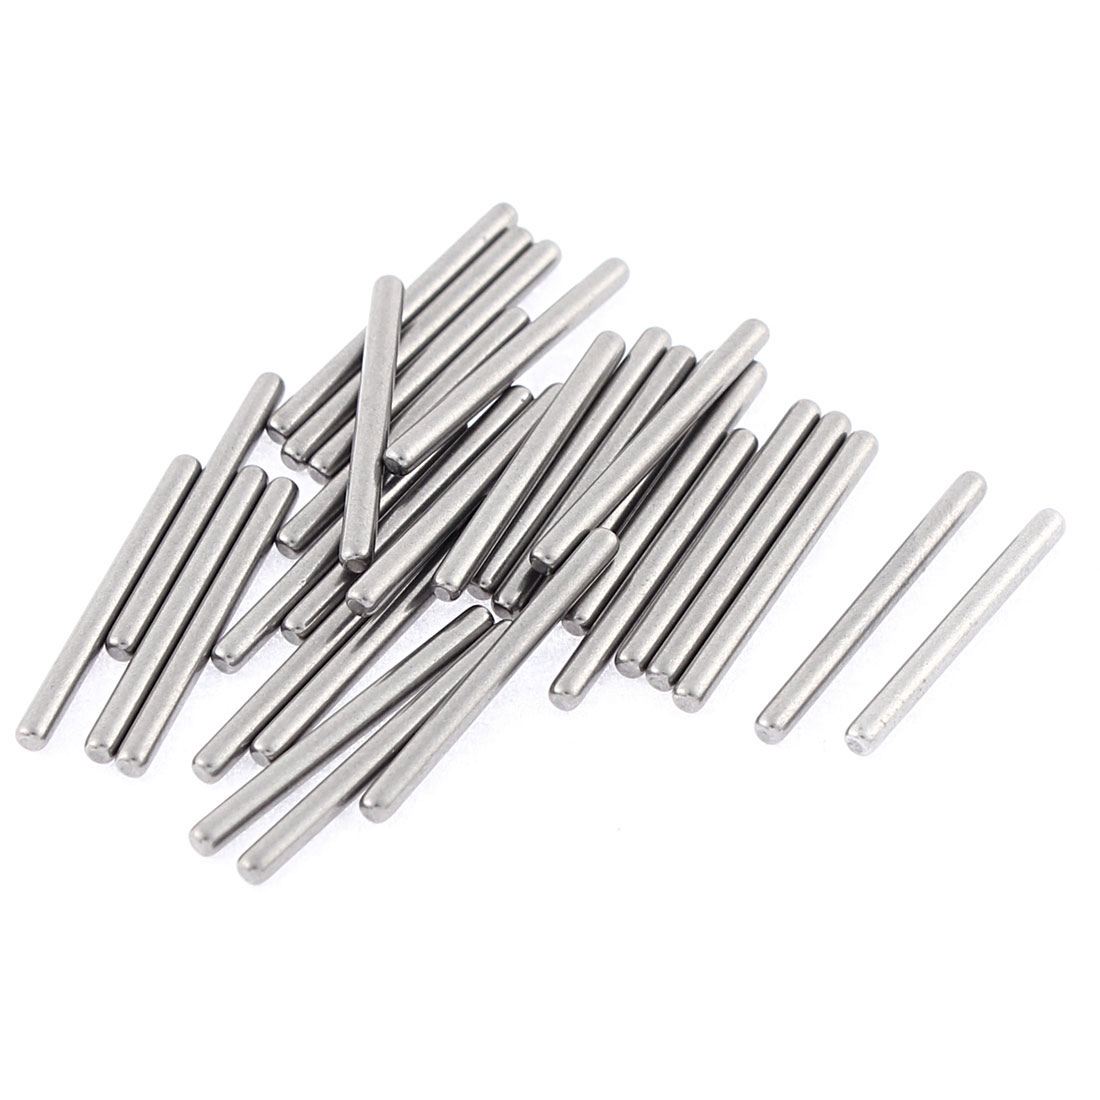 M2x22mm Stainless Steel Straight Retaining Dowel Pins Rod Fasten Elements 30 Pcs